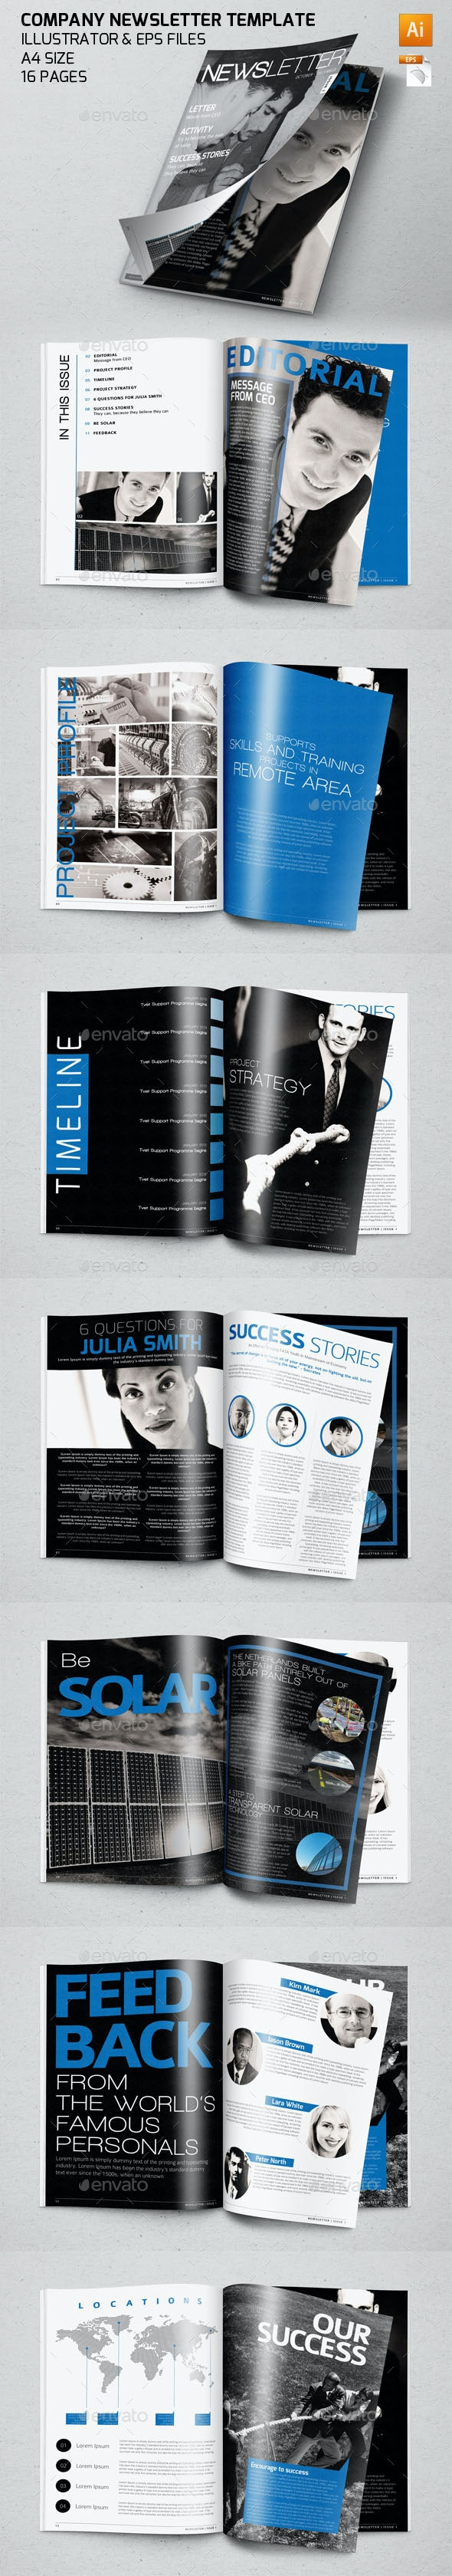 Company Newsletter Template - Newsletters Print Templates